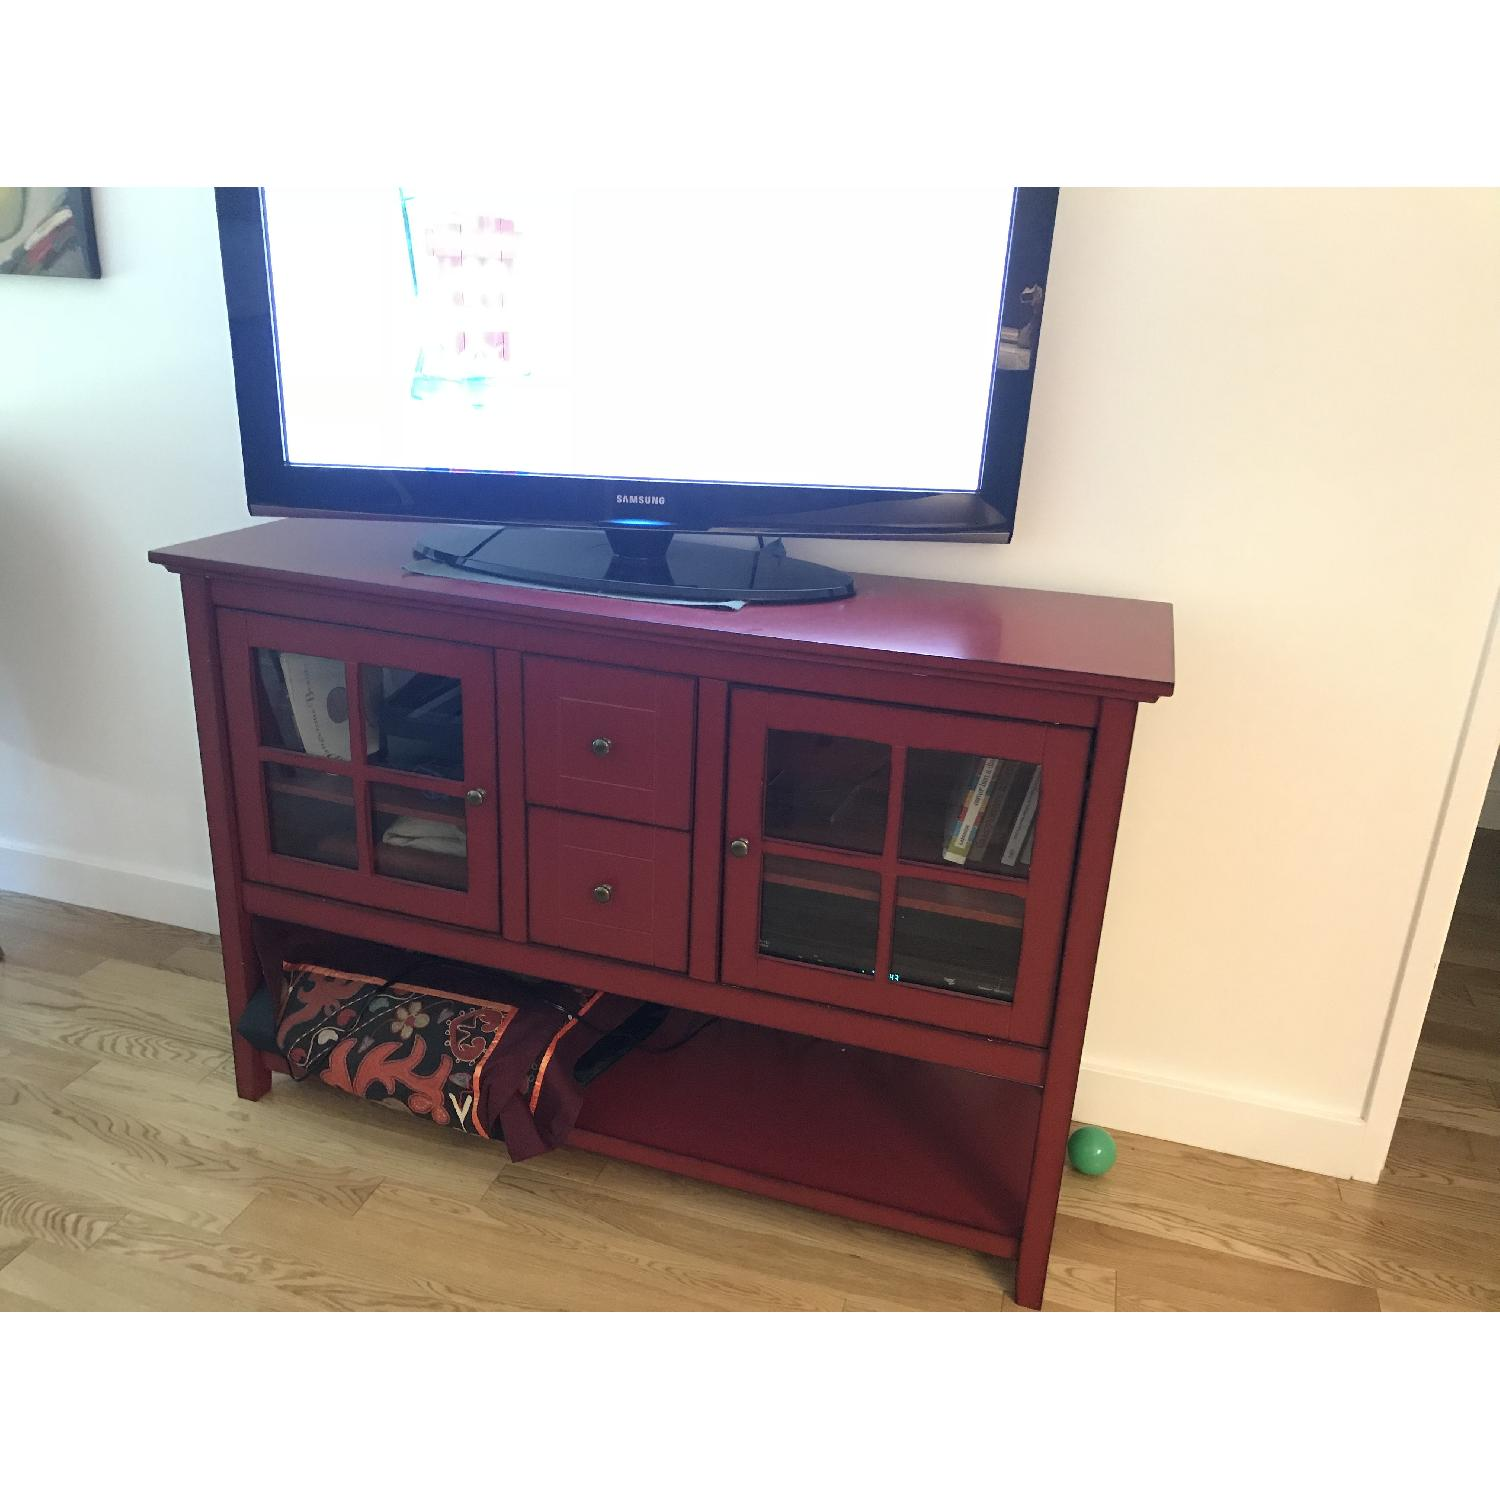 Pier Antique Red TV Stand Buffet AptDeco - Pier 1 tv console table